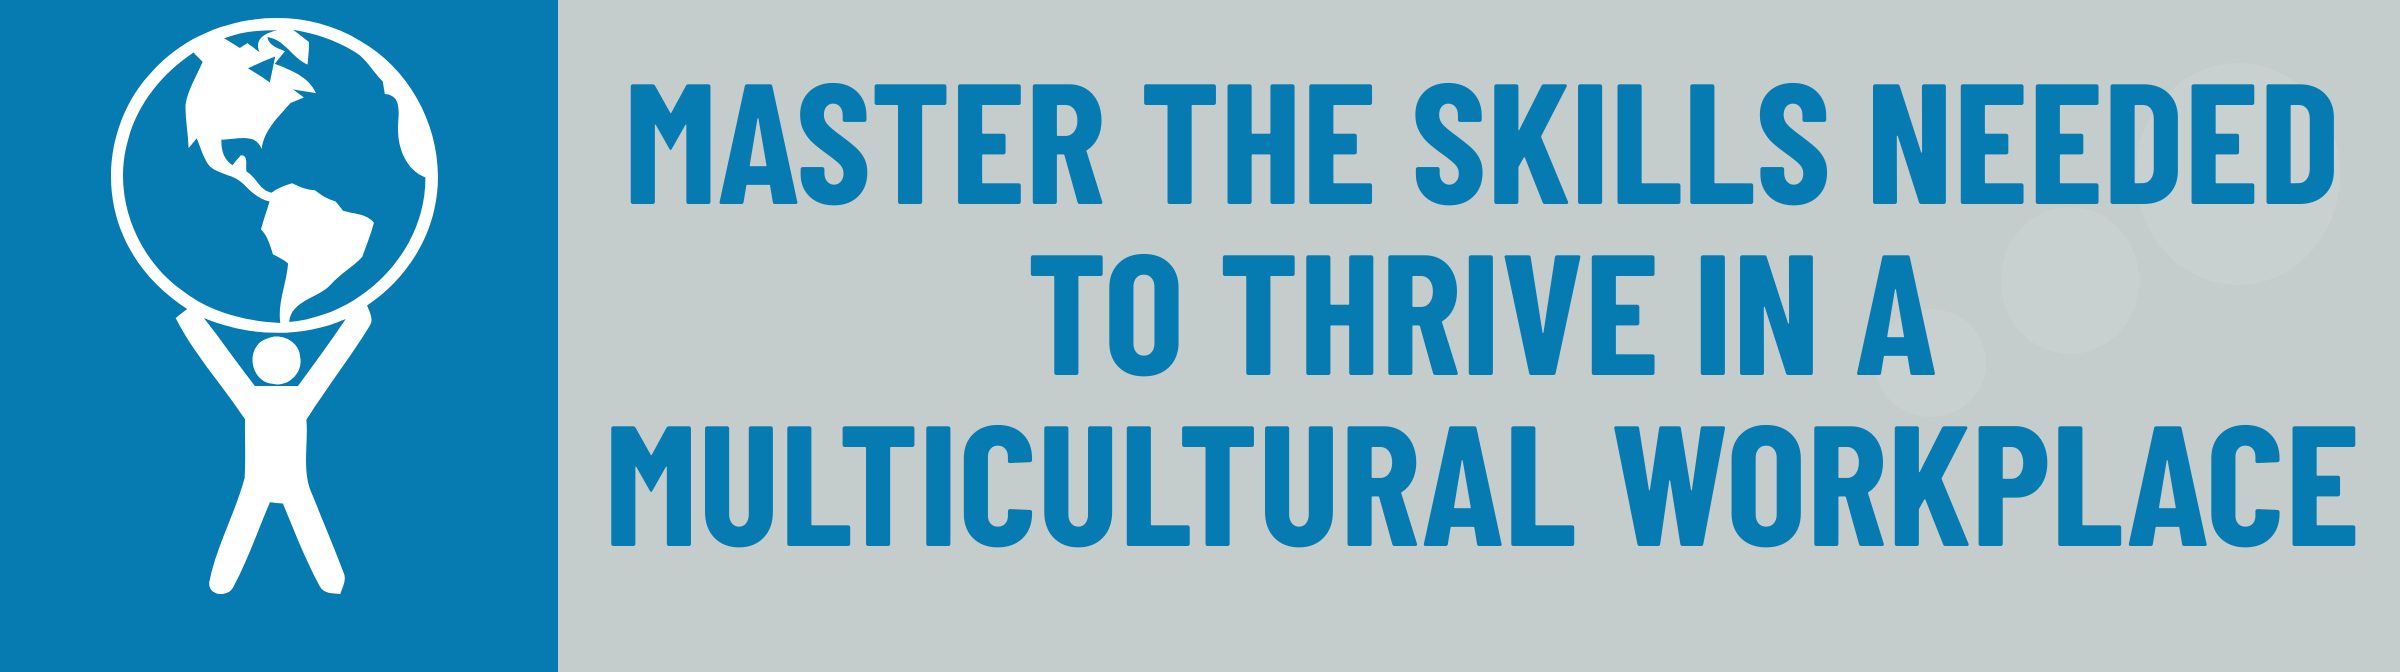 Banner: Master the Skills to Thrive in a Multicultural Workplace